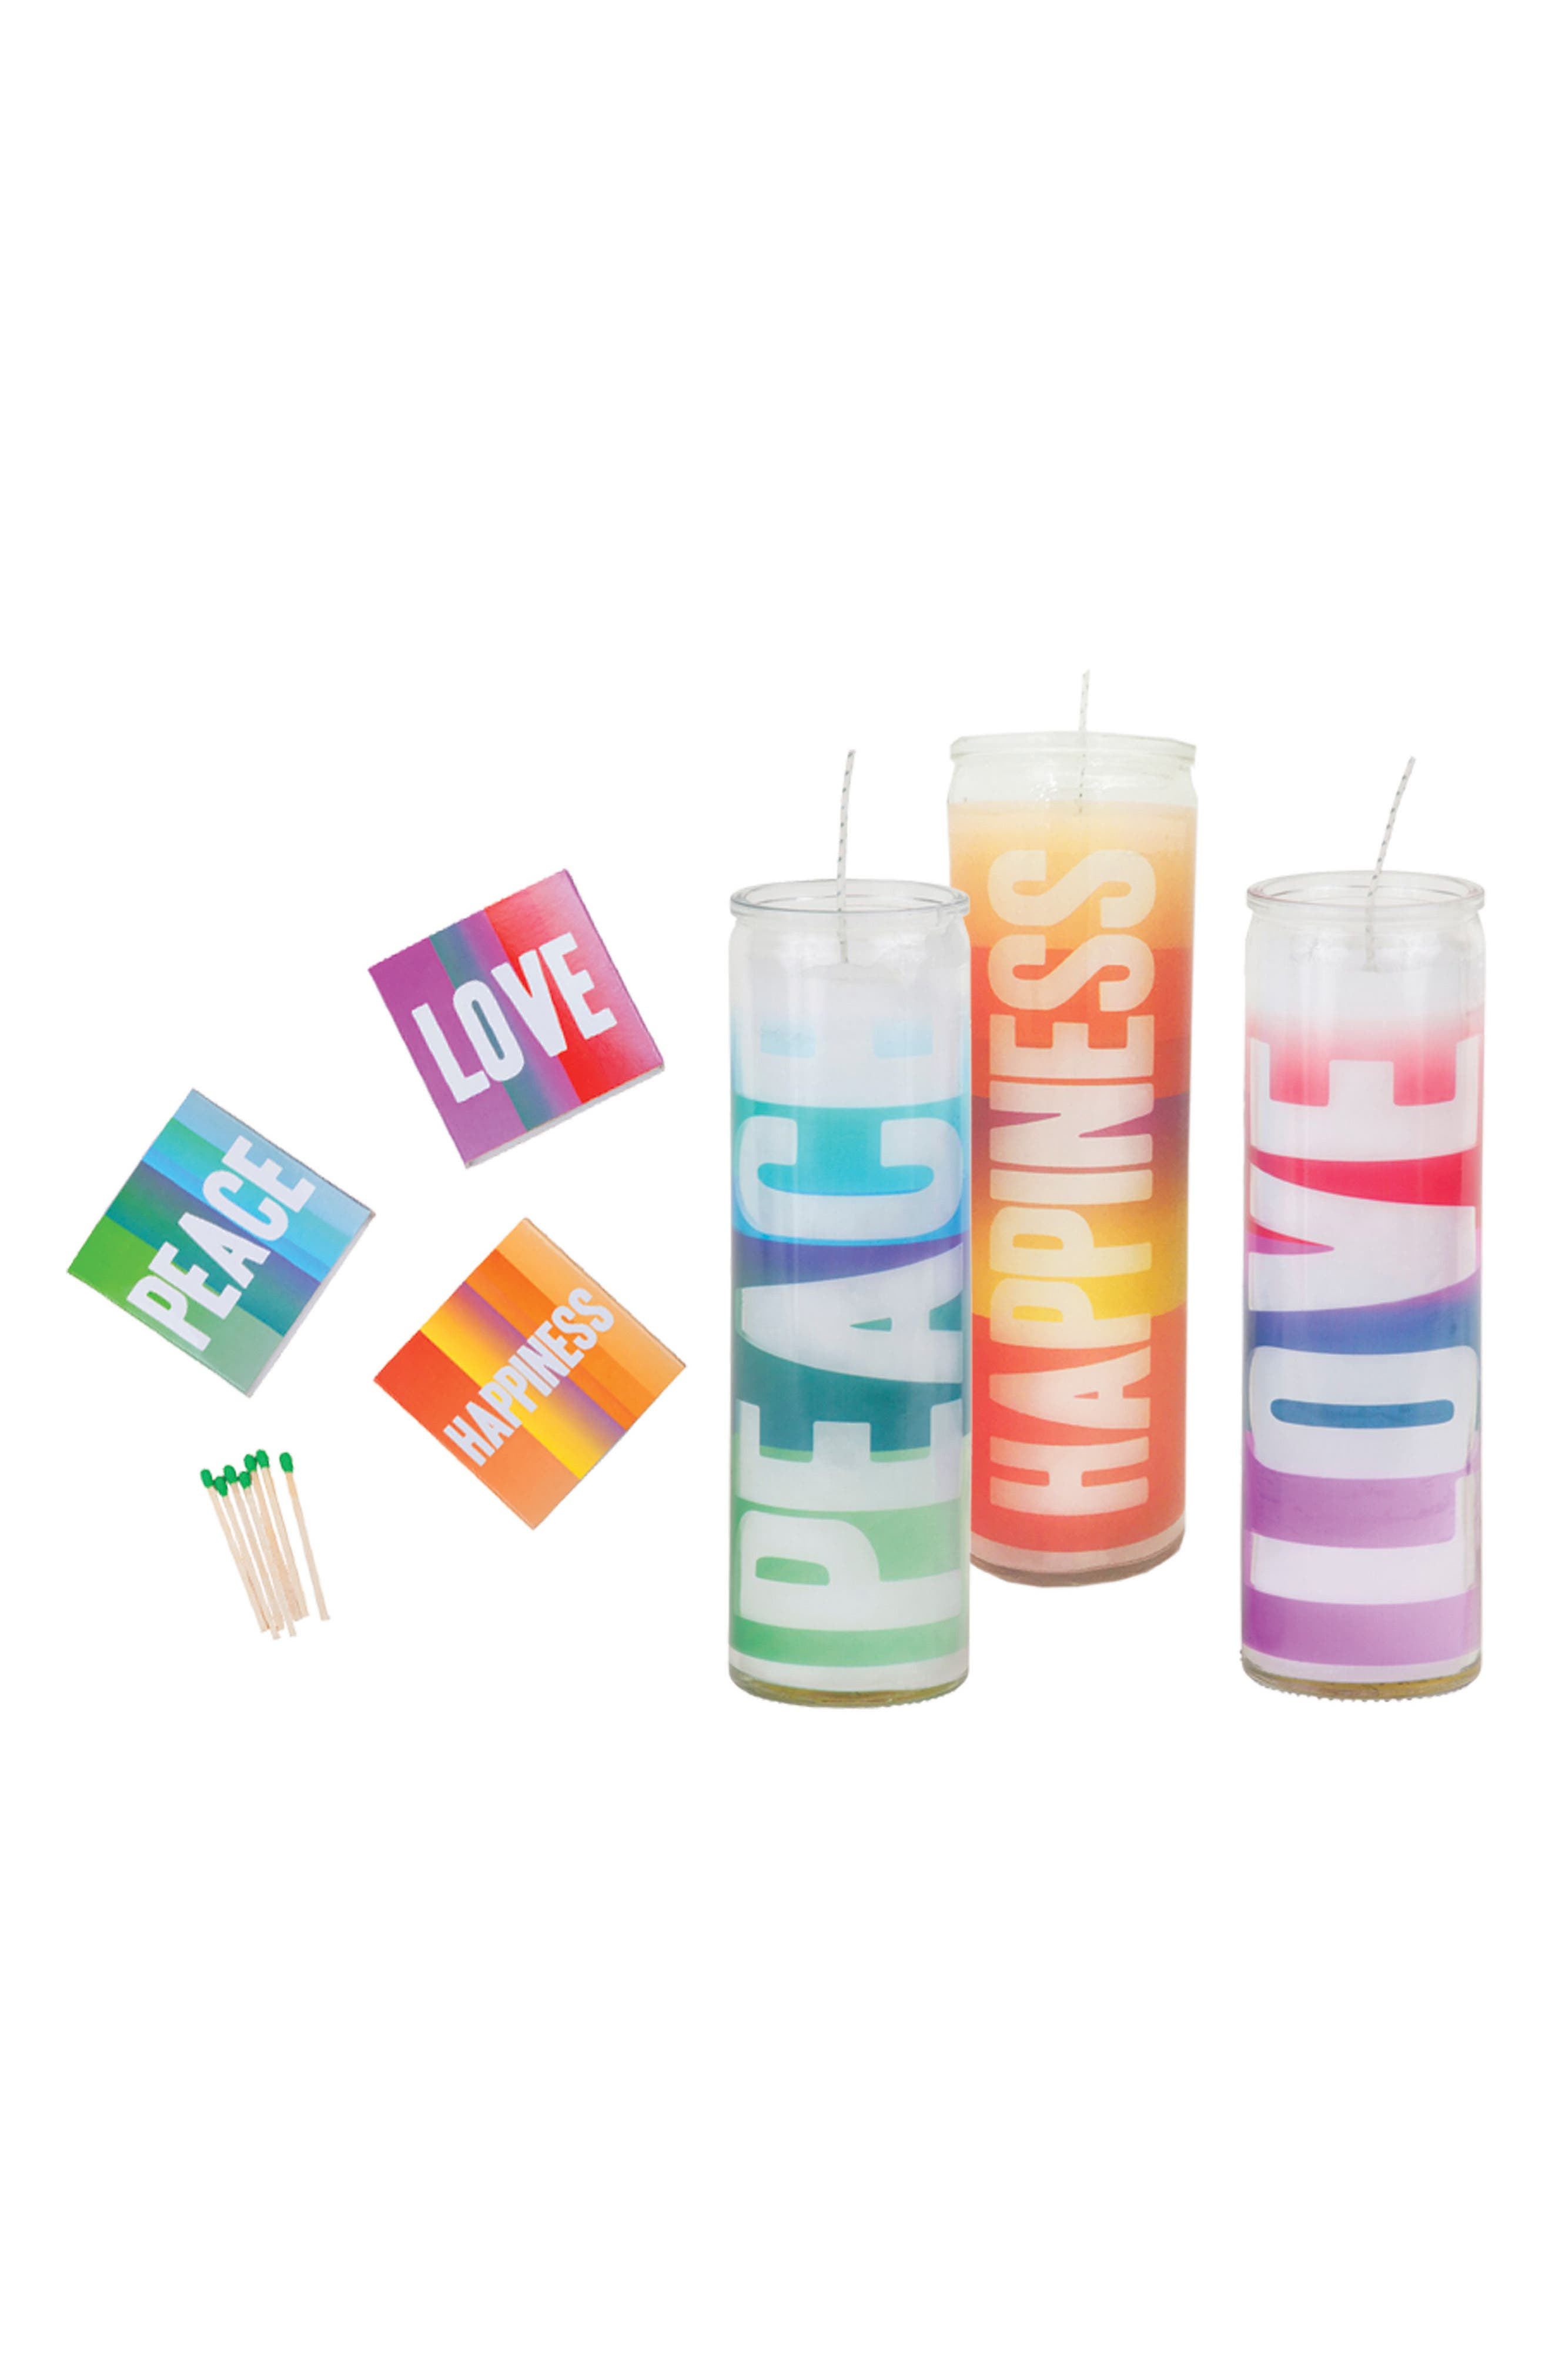 Sisters of Los Angeles 6-Piece Candle Gift Set